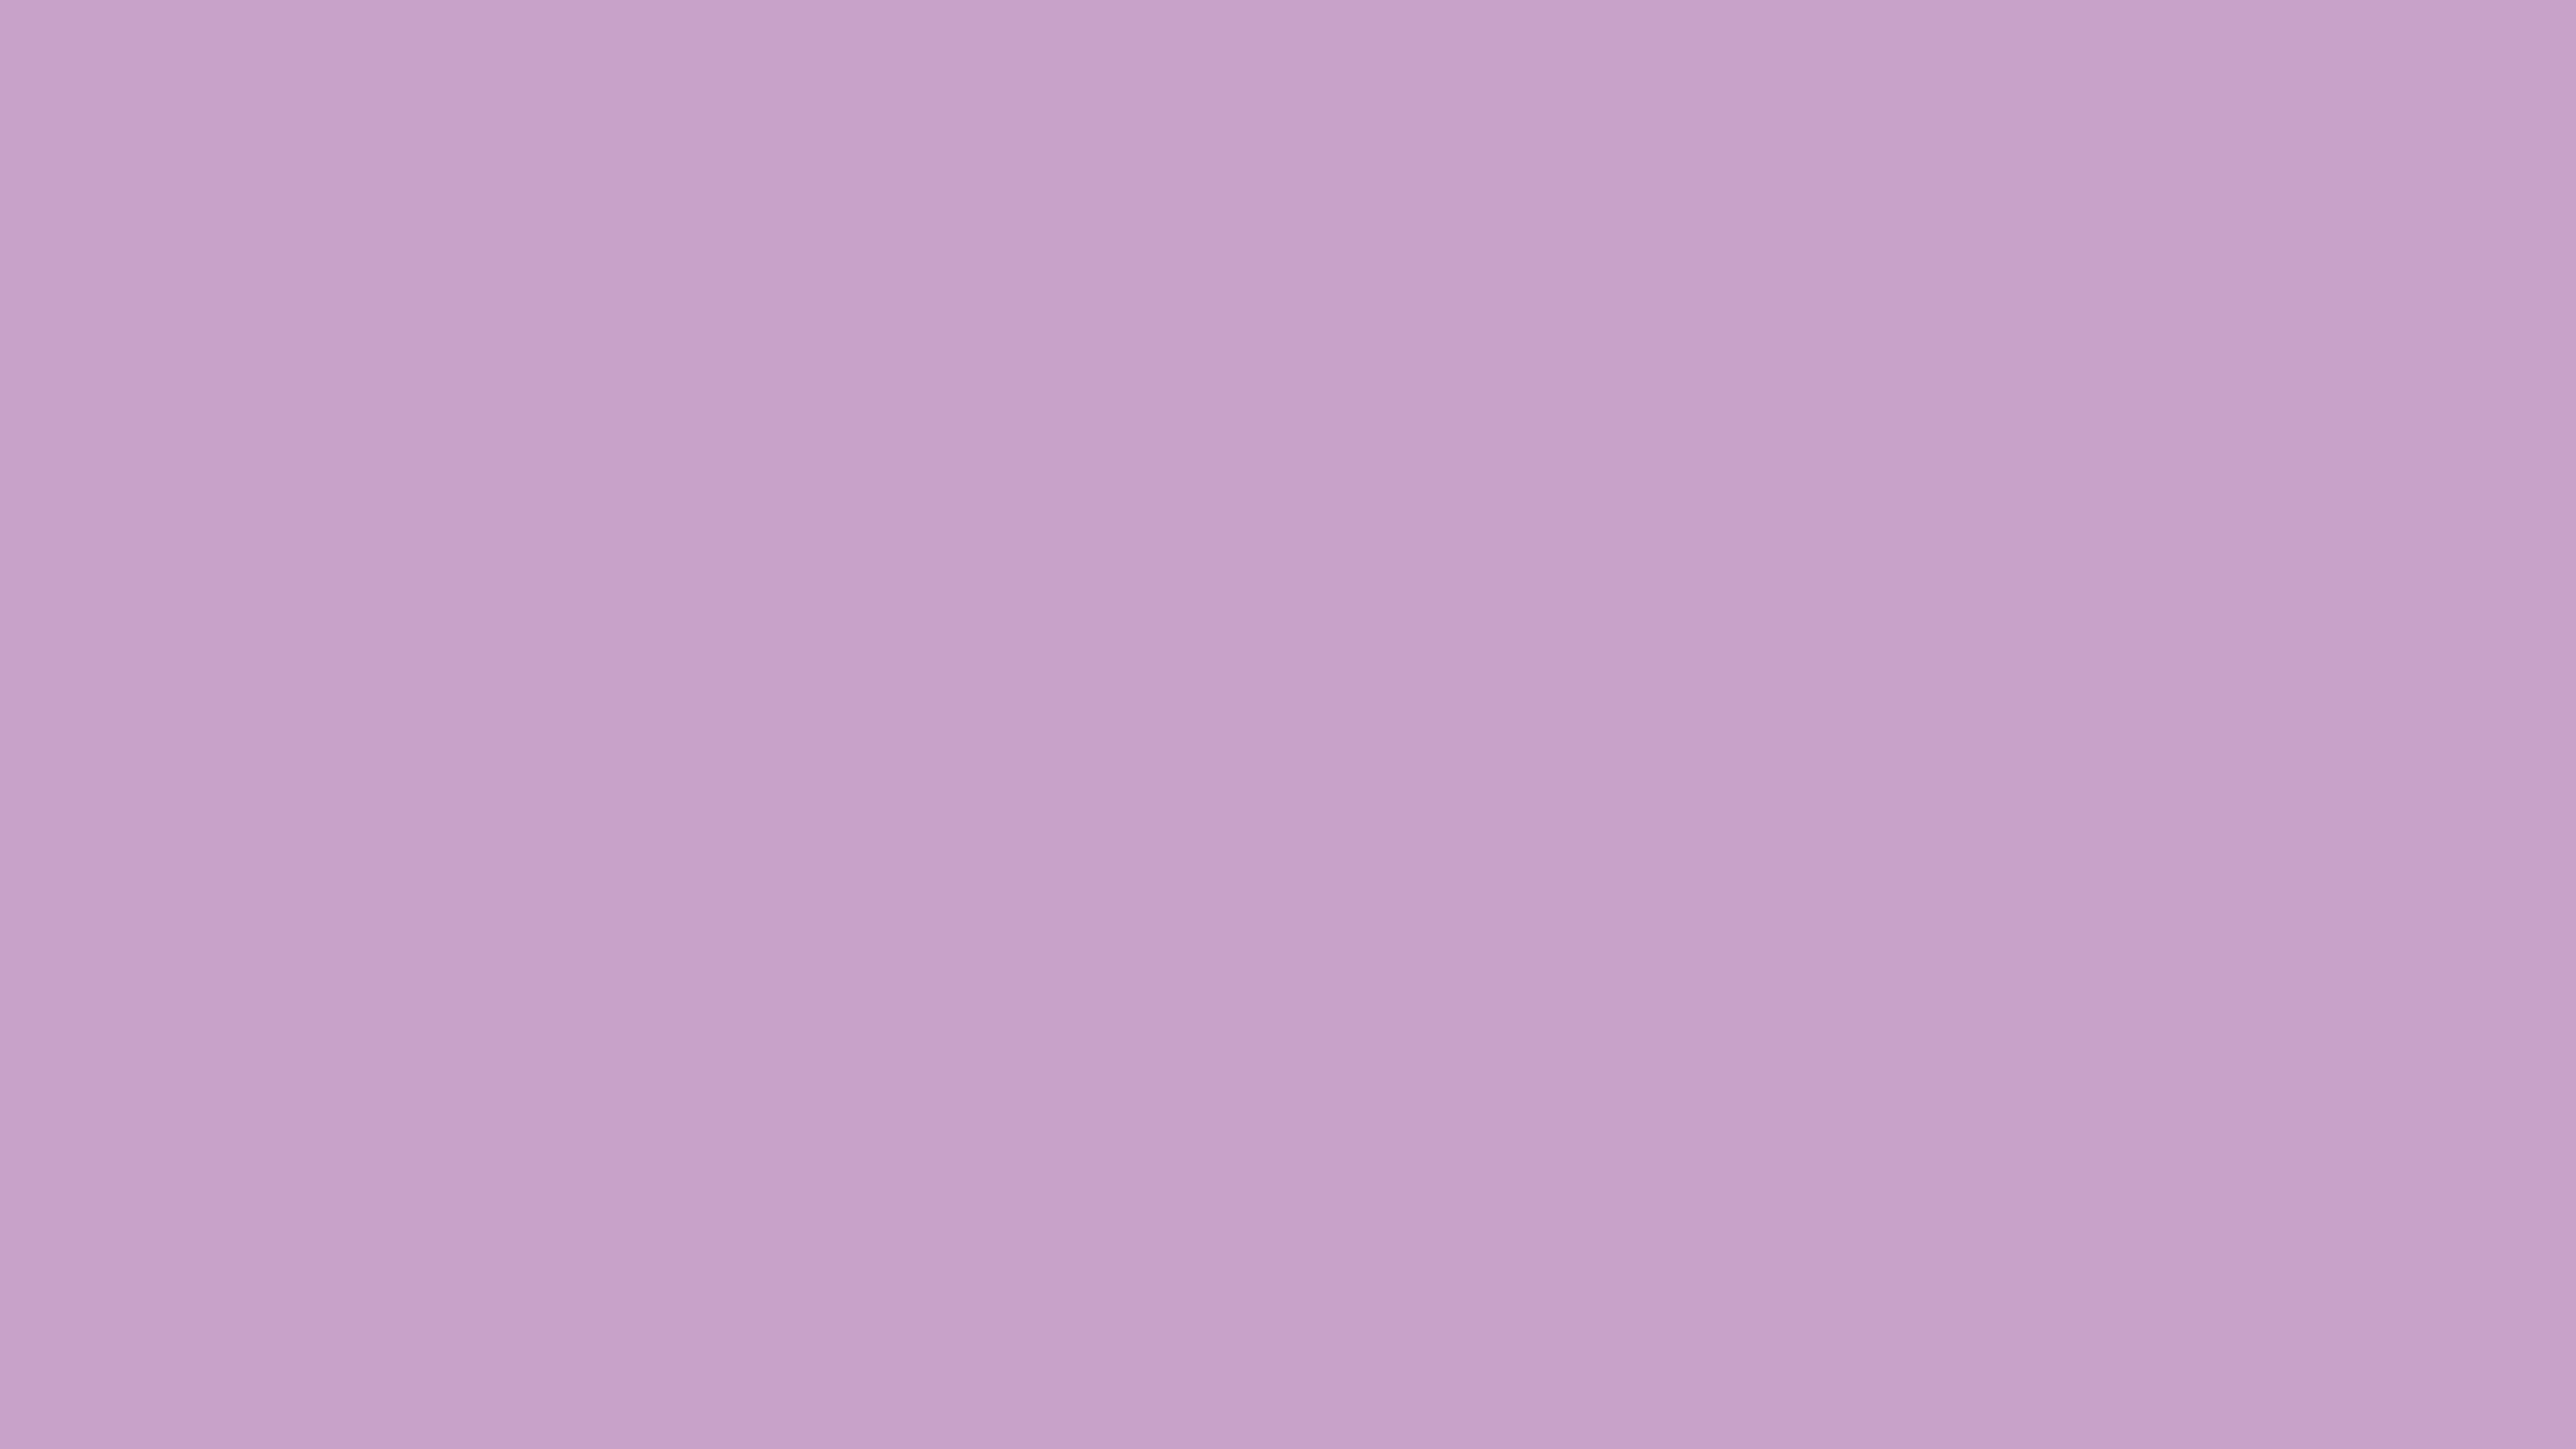 4096x2304 Lilac Solid Color Background